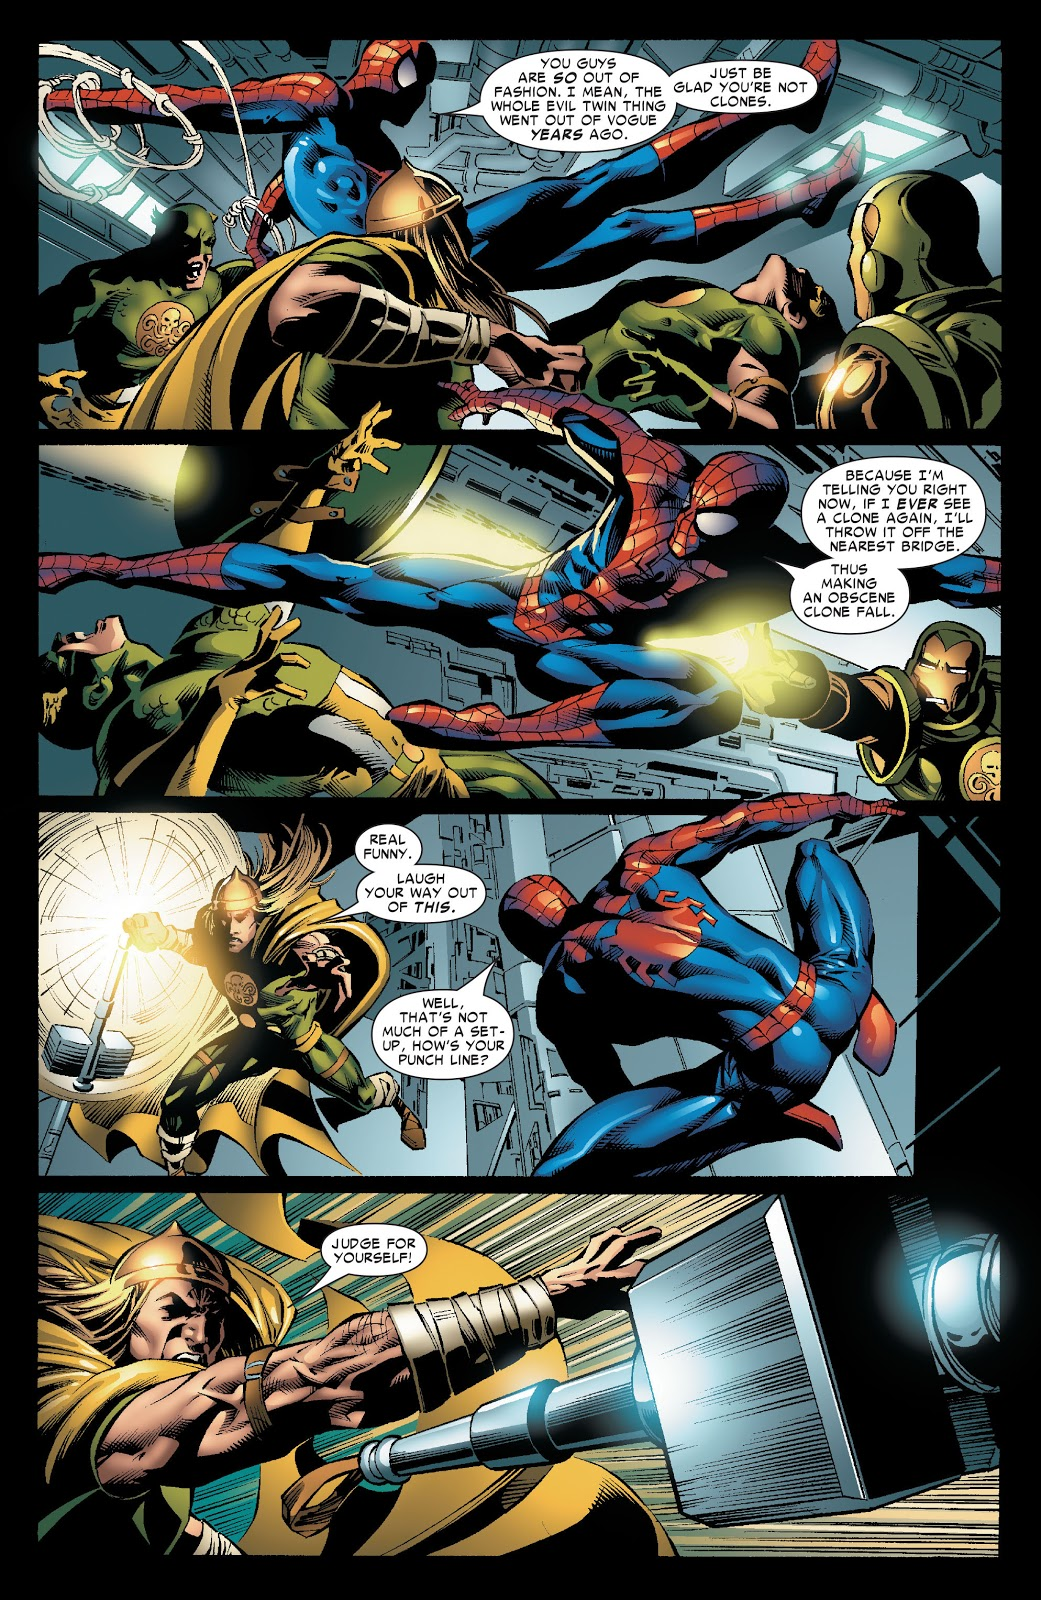 Spider-Man VS The Hydra Four